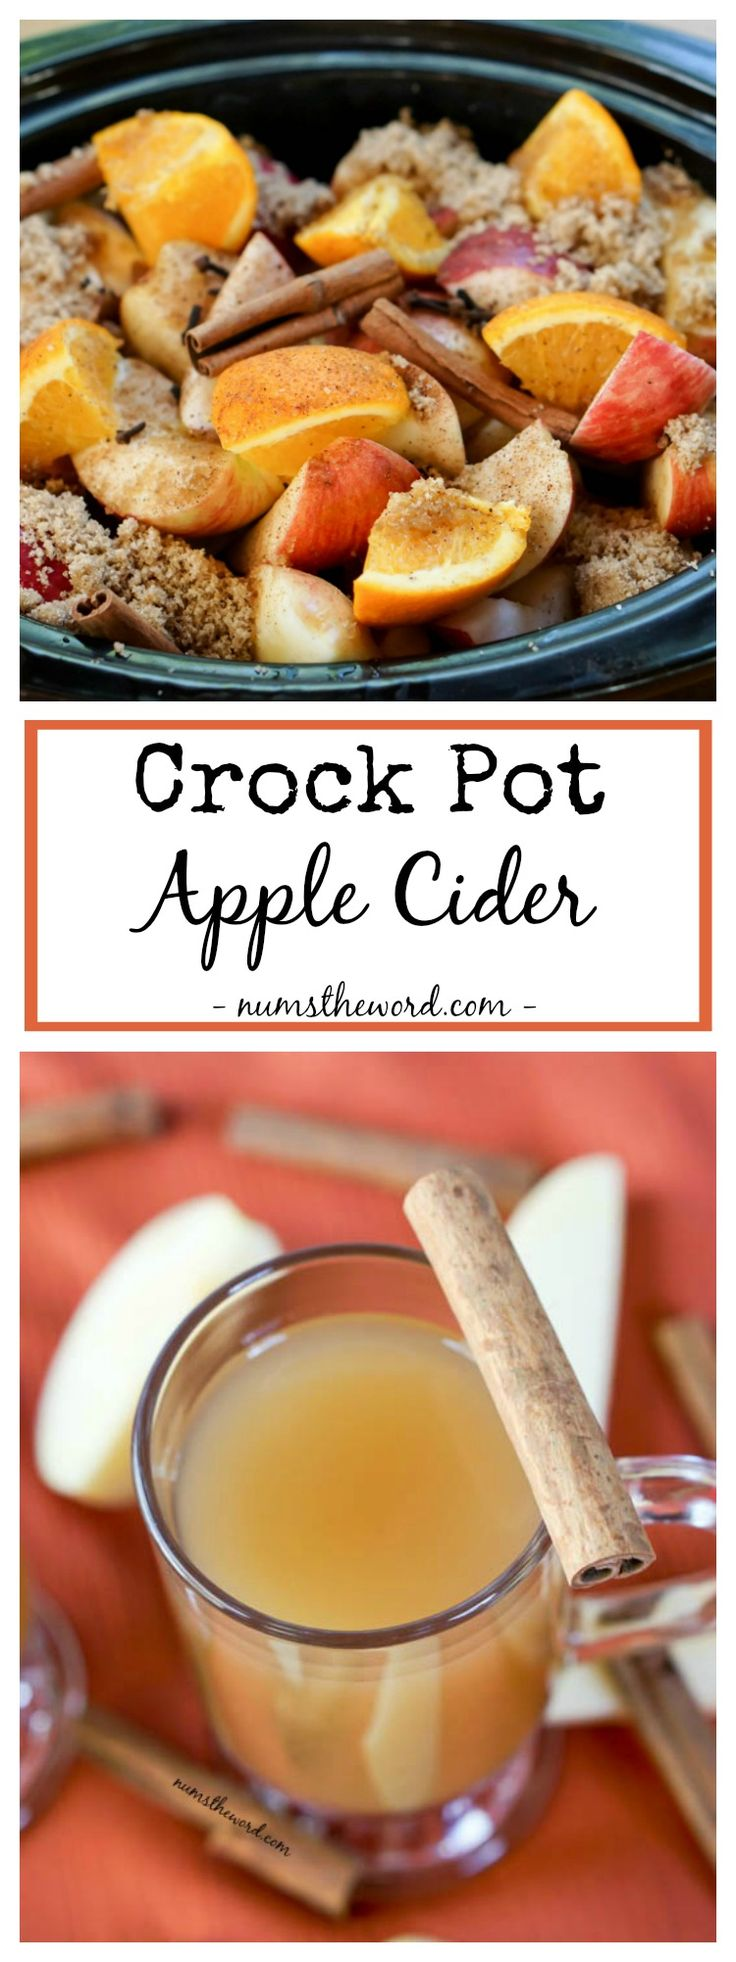 Crock Pot Apple Cider not only makes your home smell like Autumn, it tastes amazing too! Fresh Homemade Apple Cider is the best on a chilly day or night!